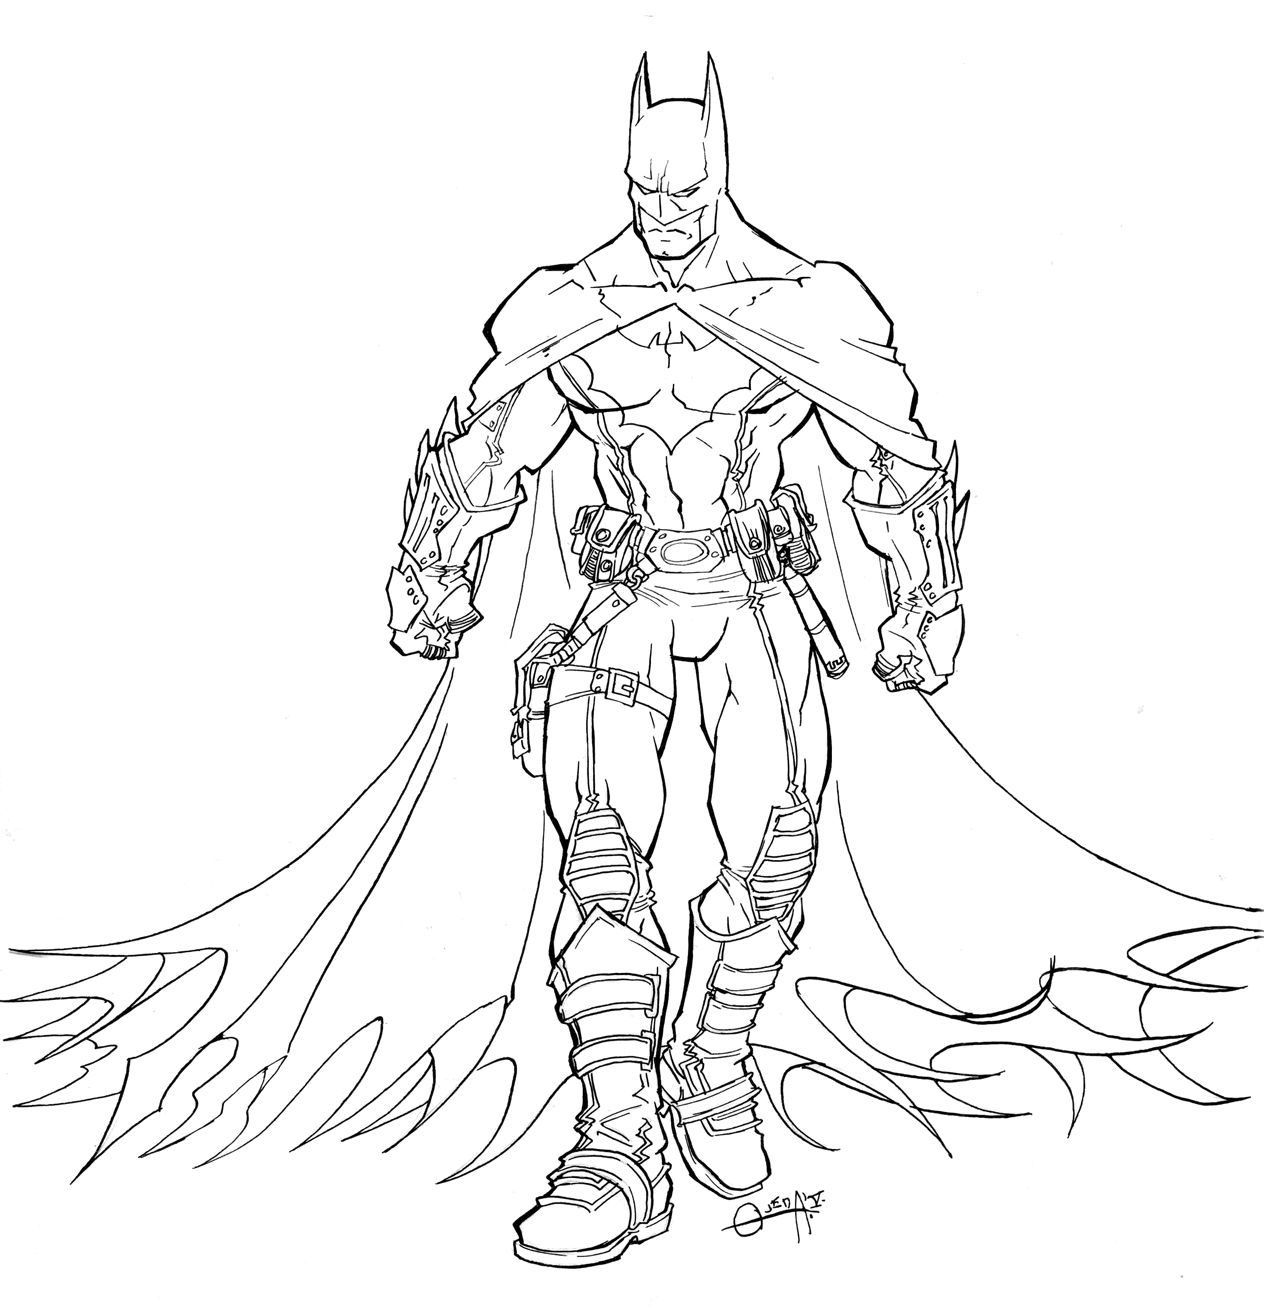 Kids coloring book pages free - Free Print Coloring Sheets Free Printable Batman Coloring Pages For Kids